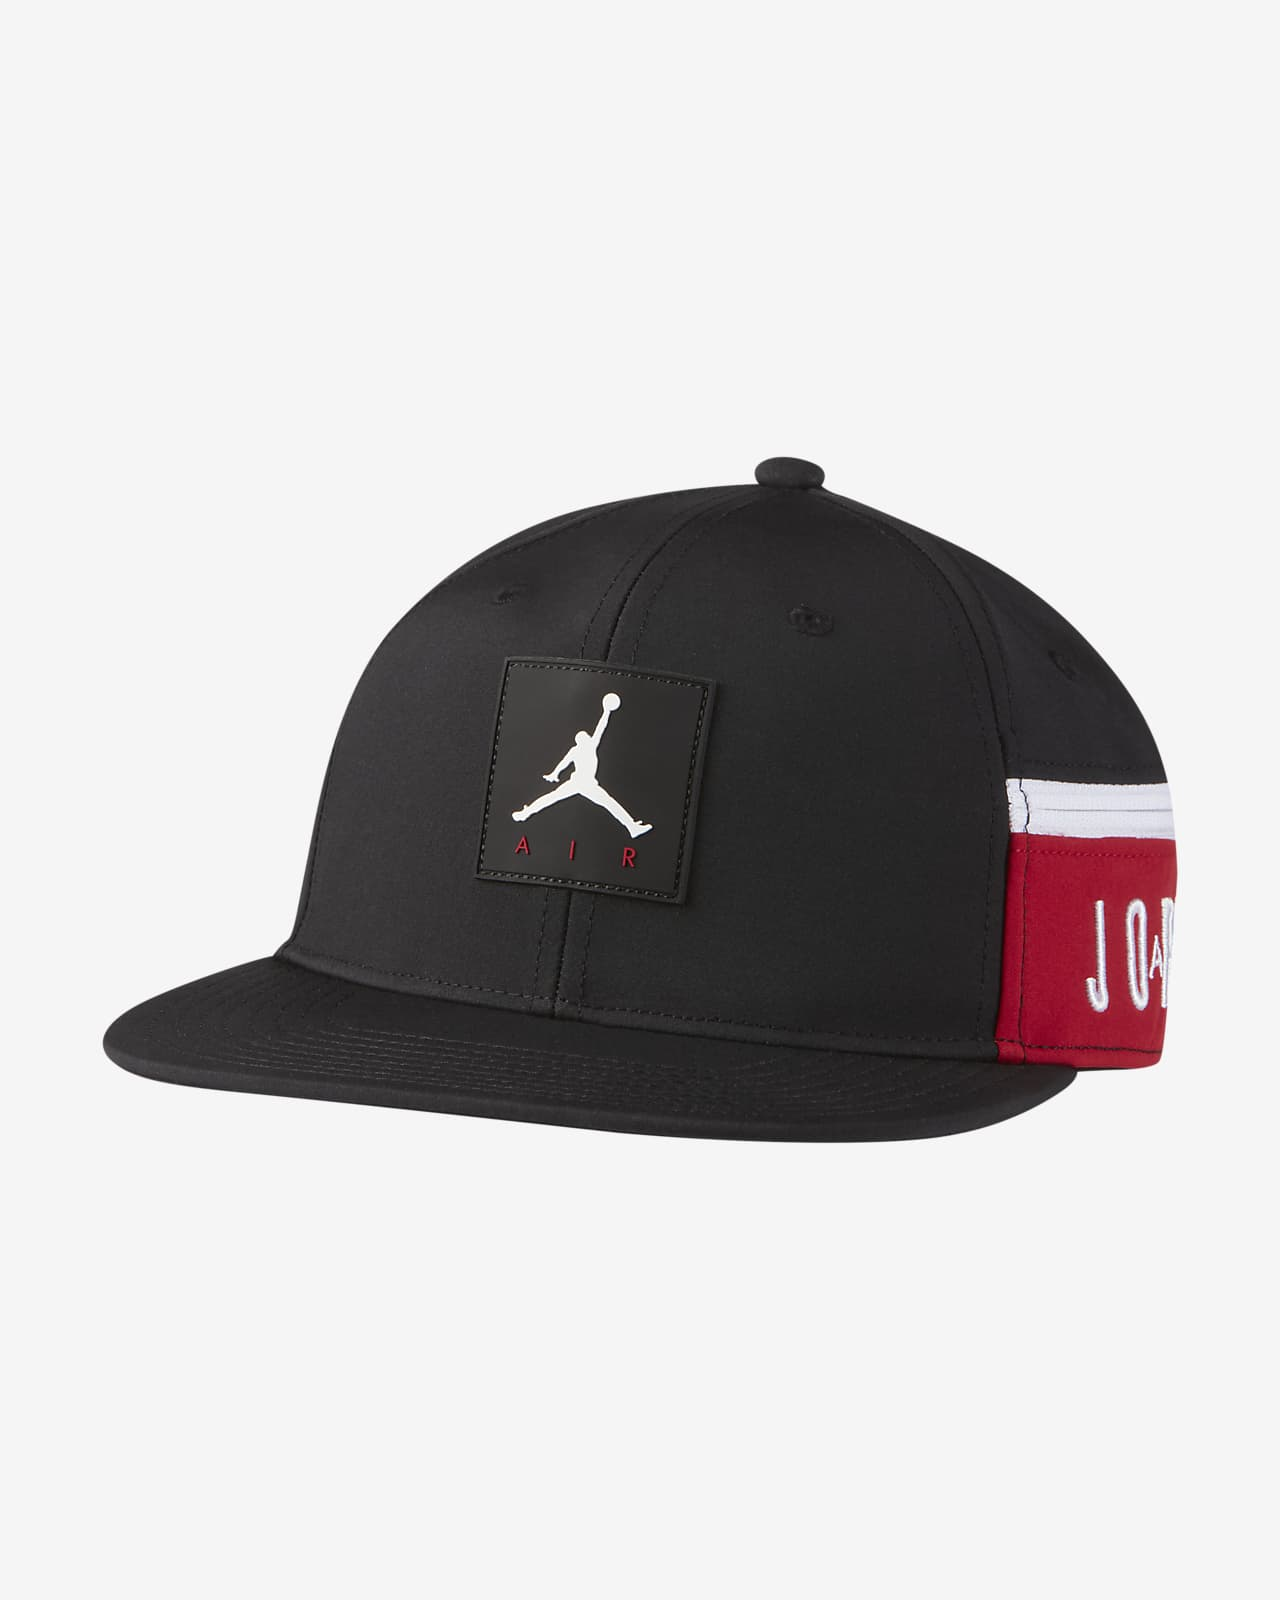 Jordan Kids' Adjustable Hat